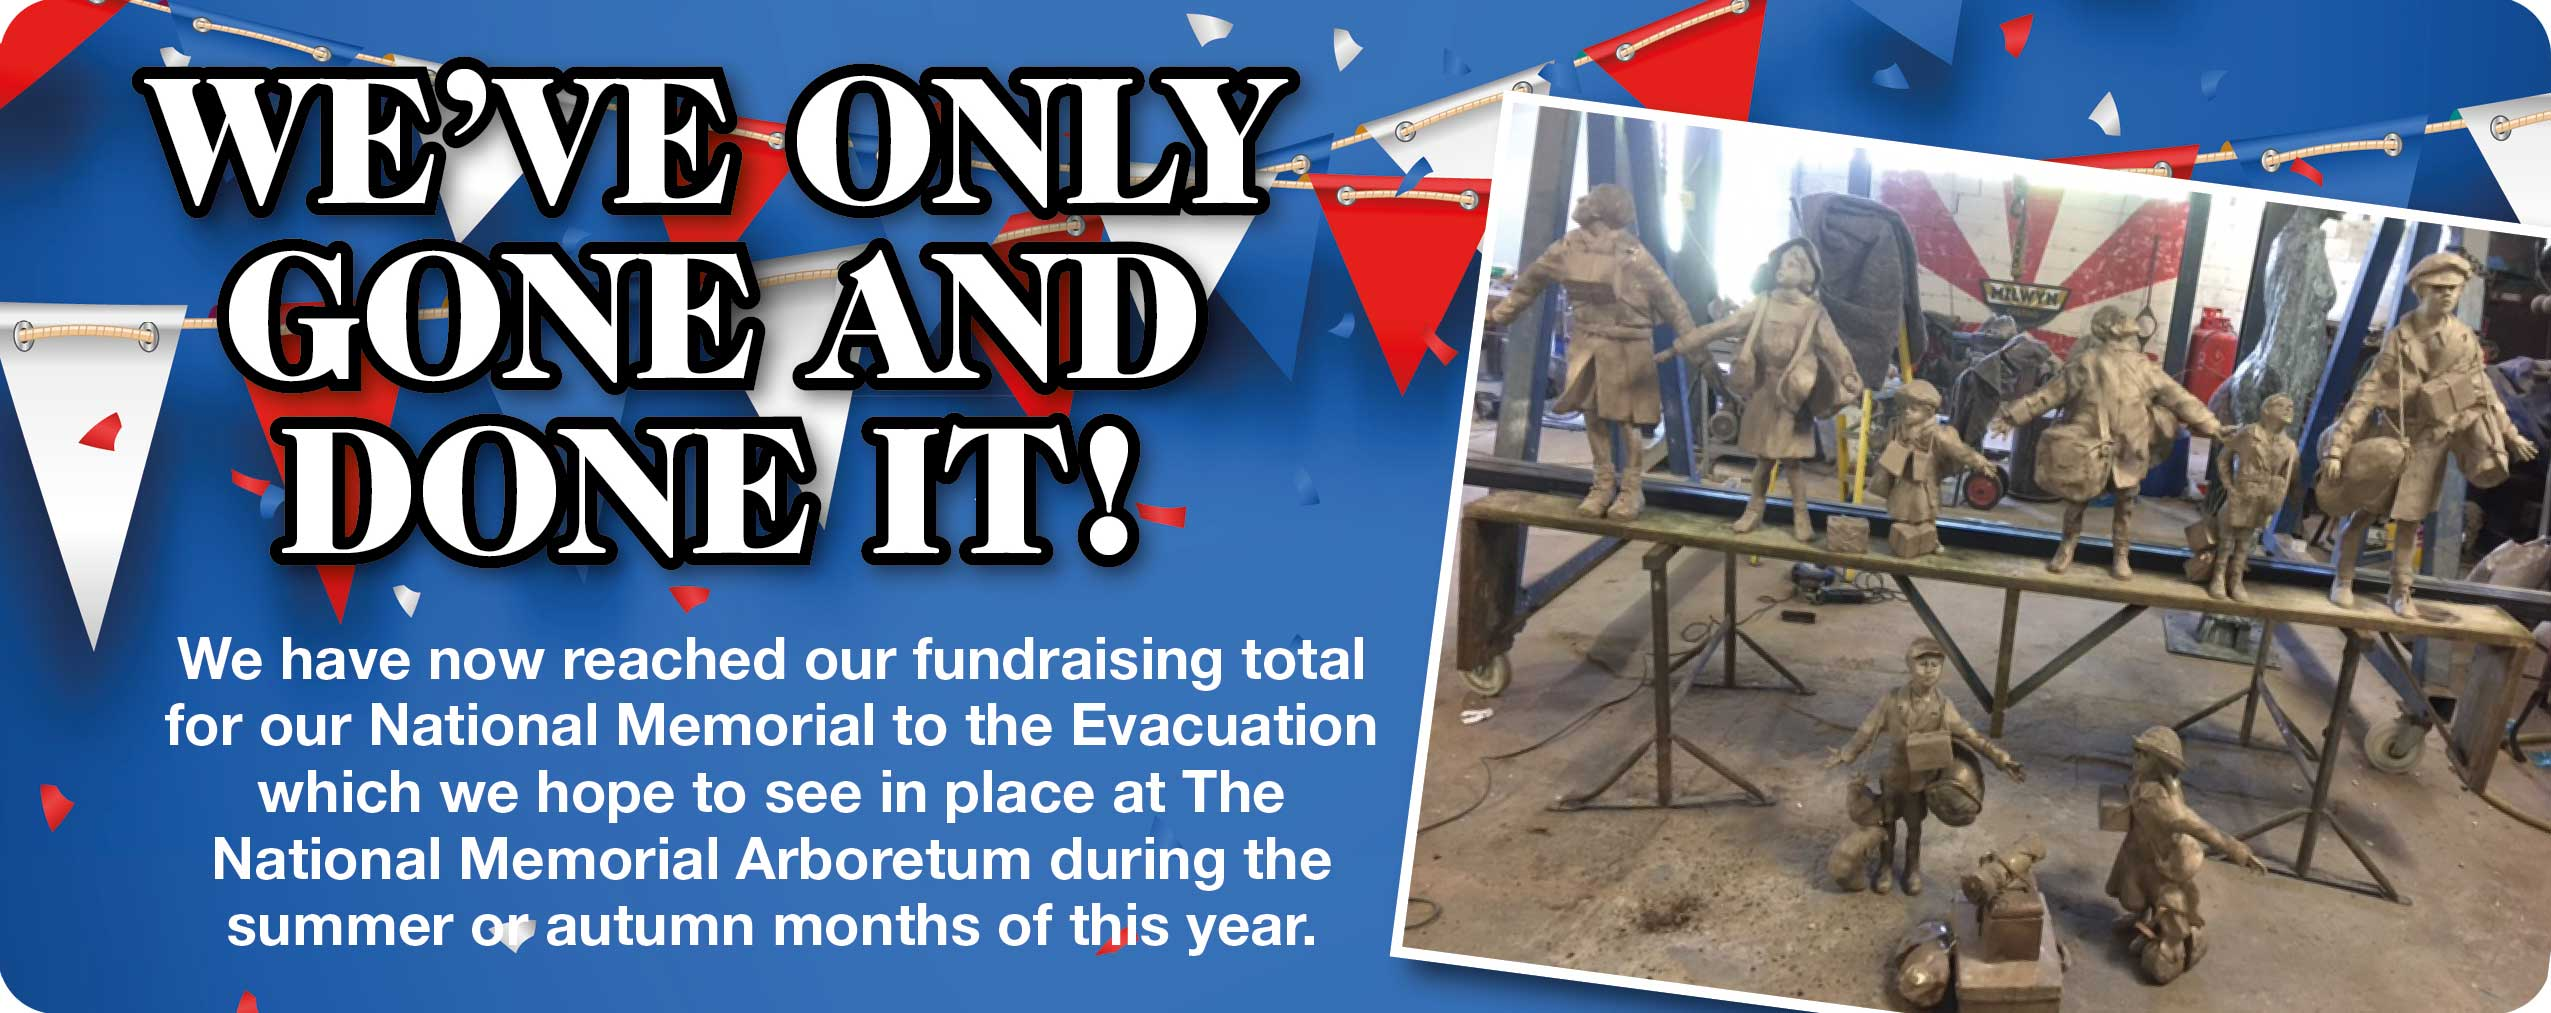 We have reached our fundraising total for our National Memorial to the Evacuation